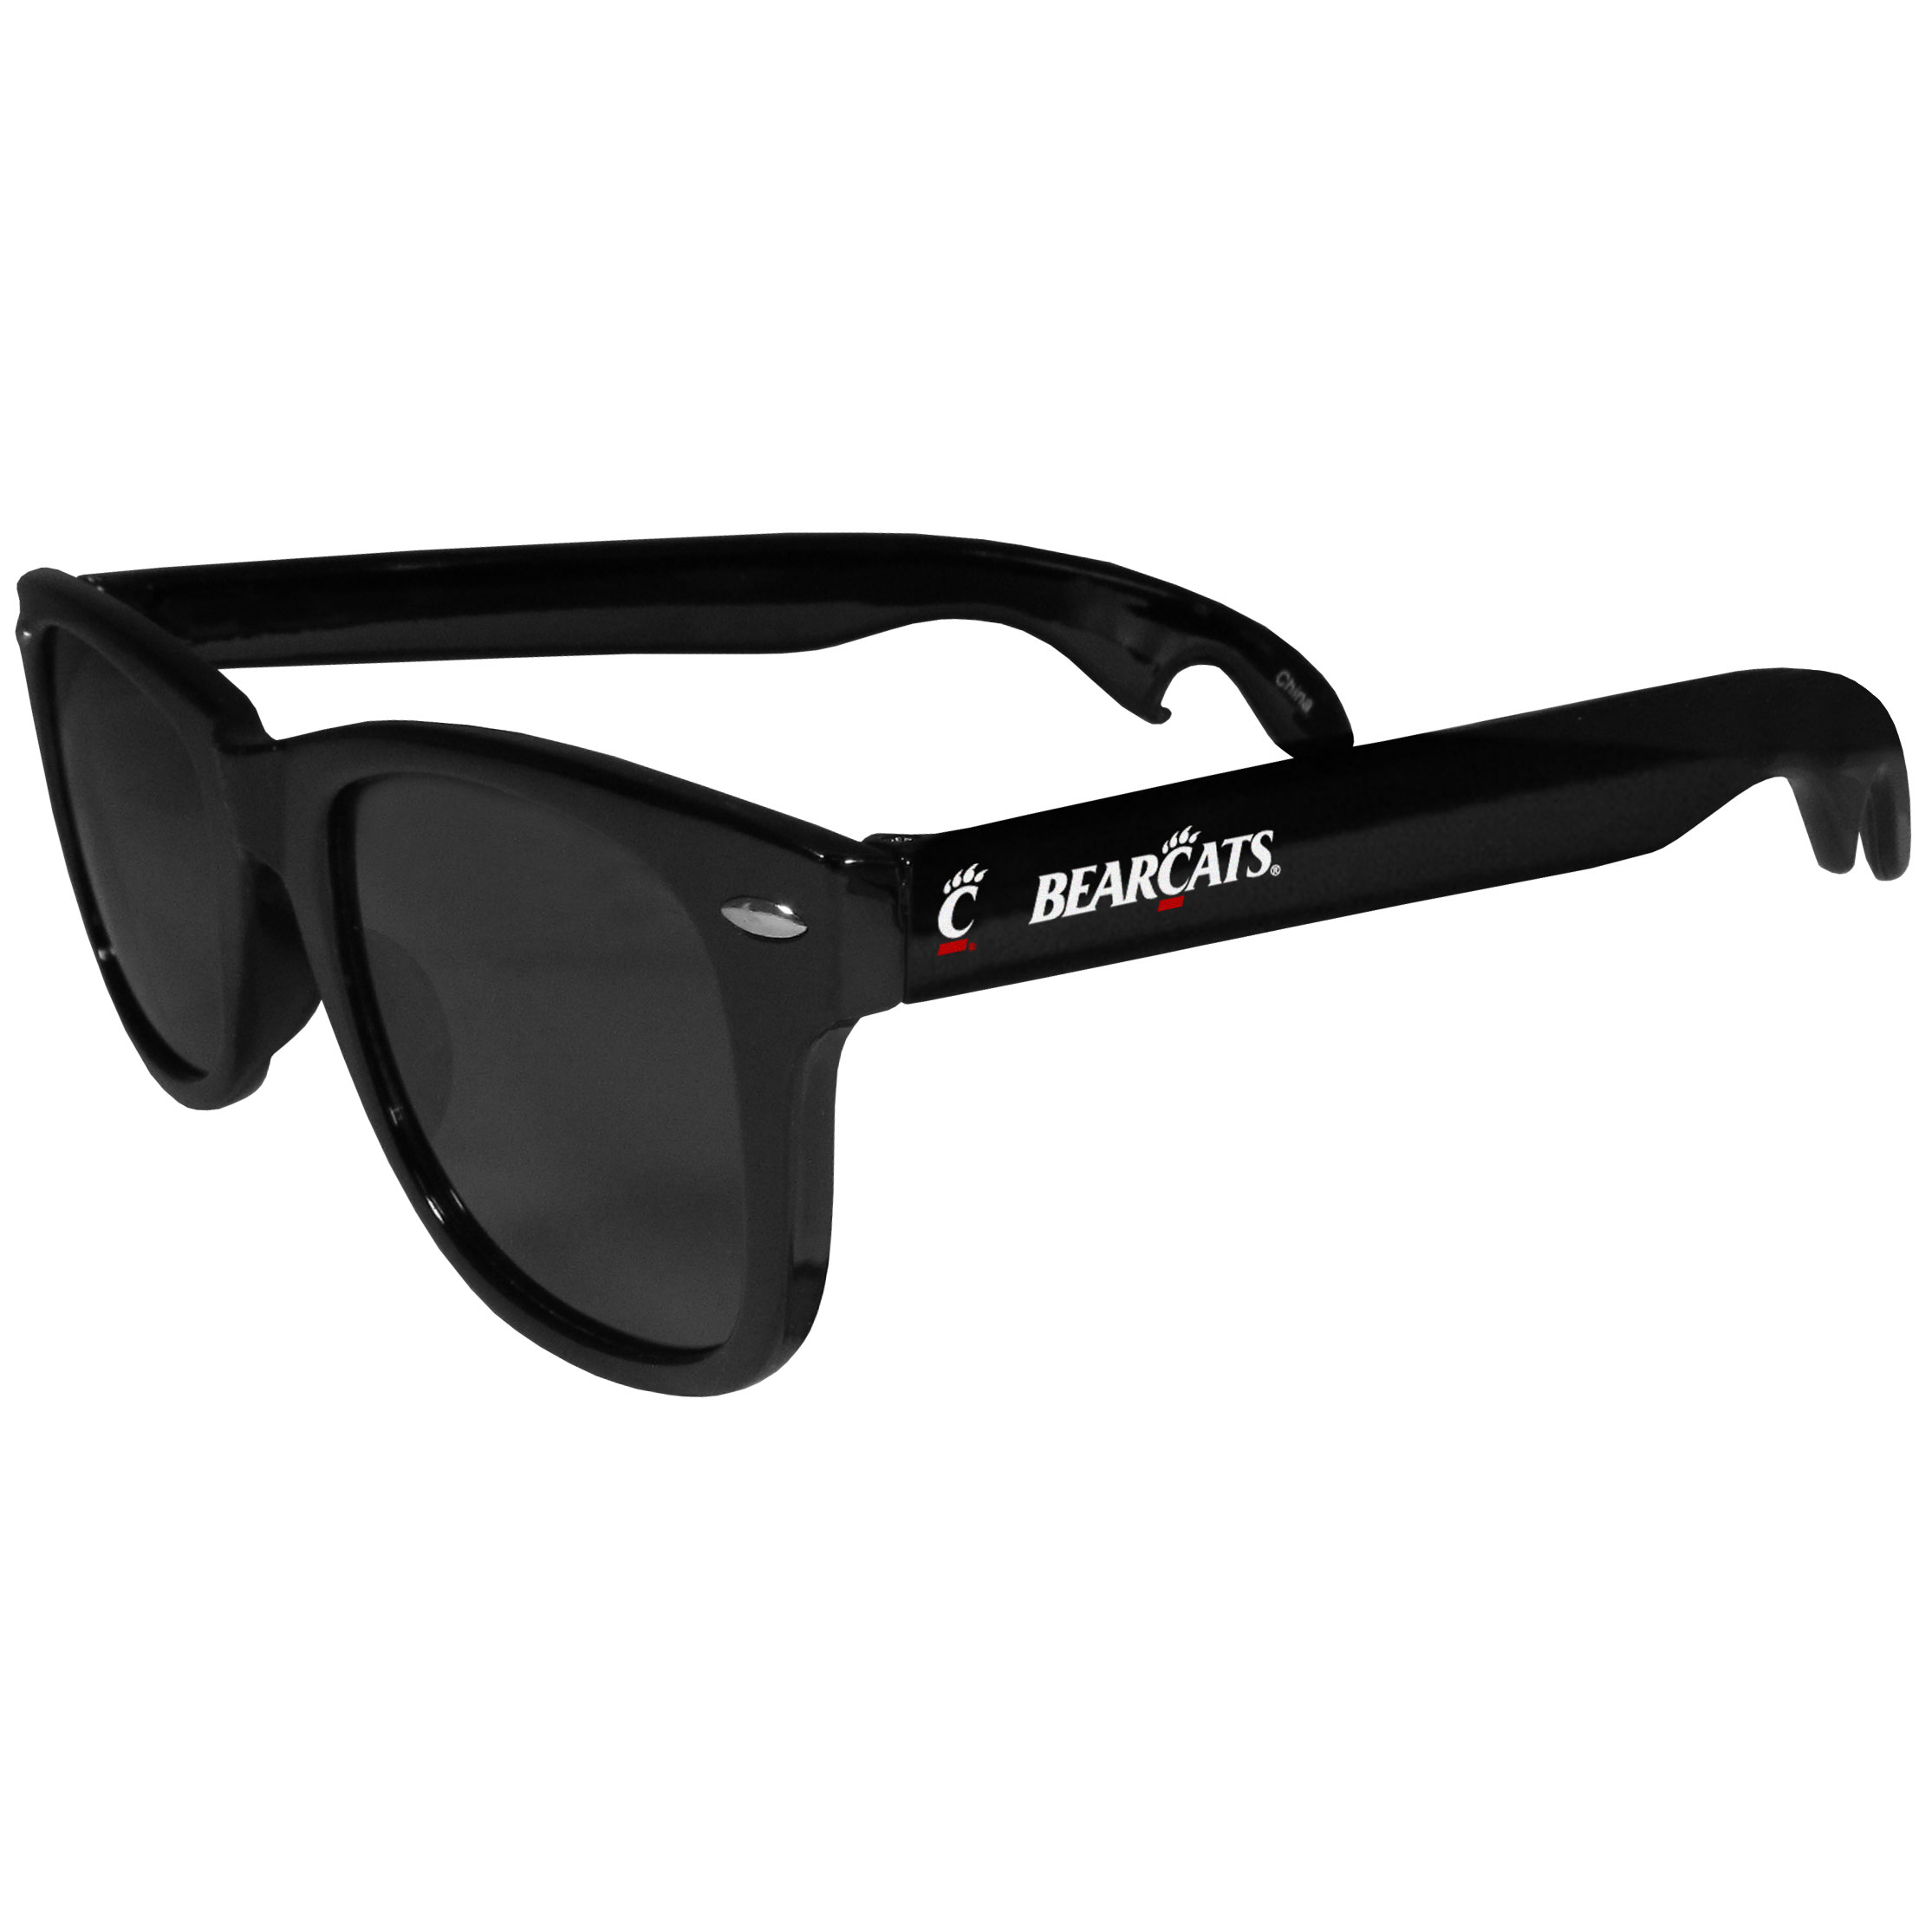 Cincinnati Bearcats Beachfarer Bottle Opener Sunglasses - Seriously, these sunglasses open bottles! Keep the party going with these amazing Cincinnati Bearcats bottle opener sunglasses. The stylish retro frames feature team designs on the arms and functional bottle openers on the end of the arms. Whether you are at the beach or having a backyard BBQ on game day, these shades will keep your eyes protected with 100% UVA/UVB protection and keep you hydrated with the handy bottle opener arms.